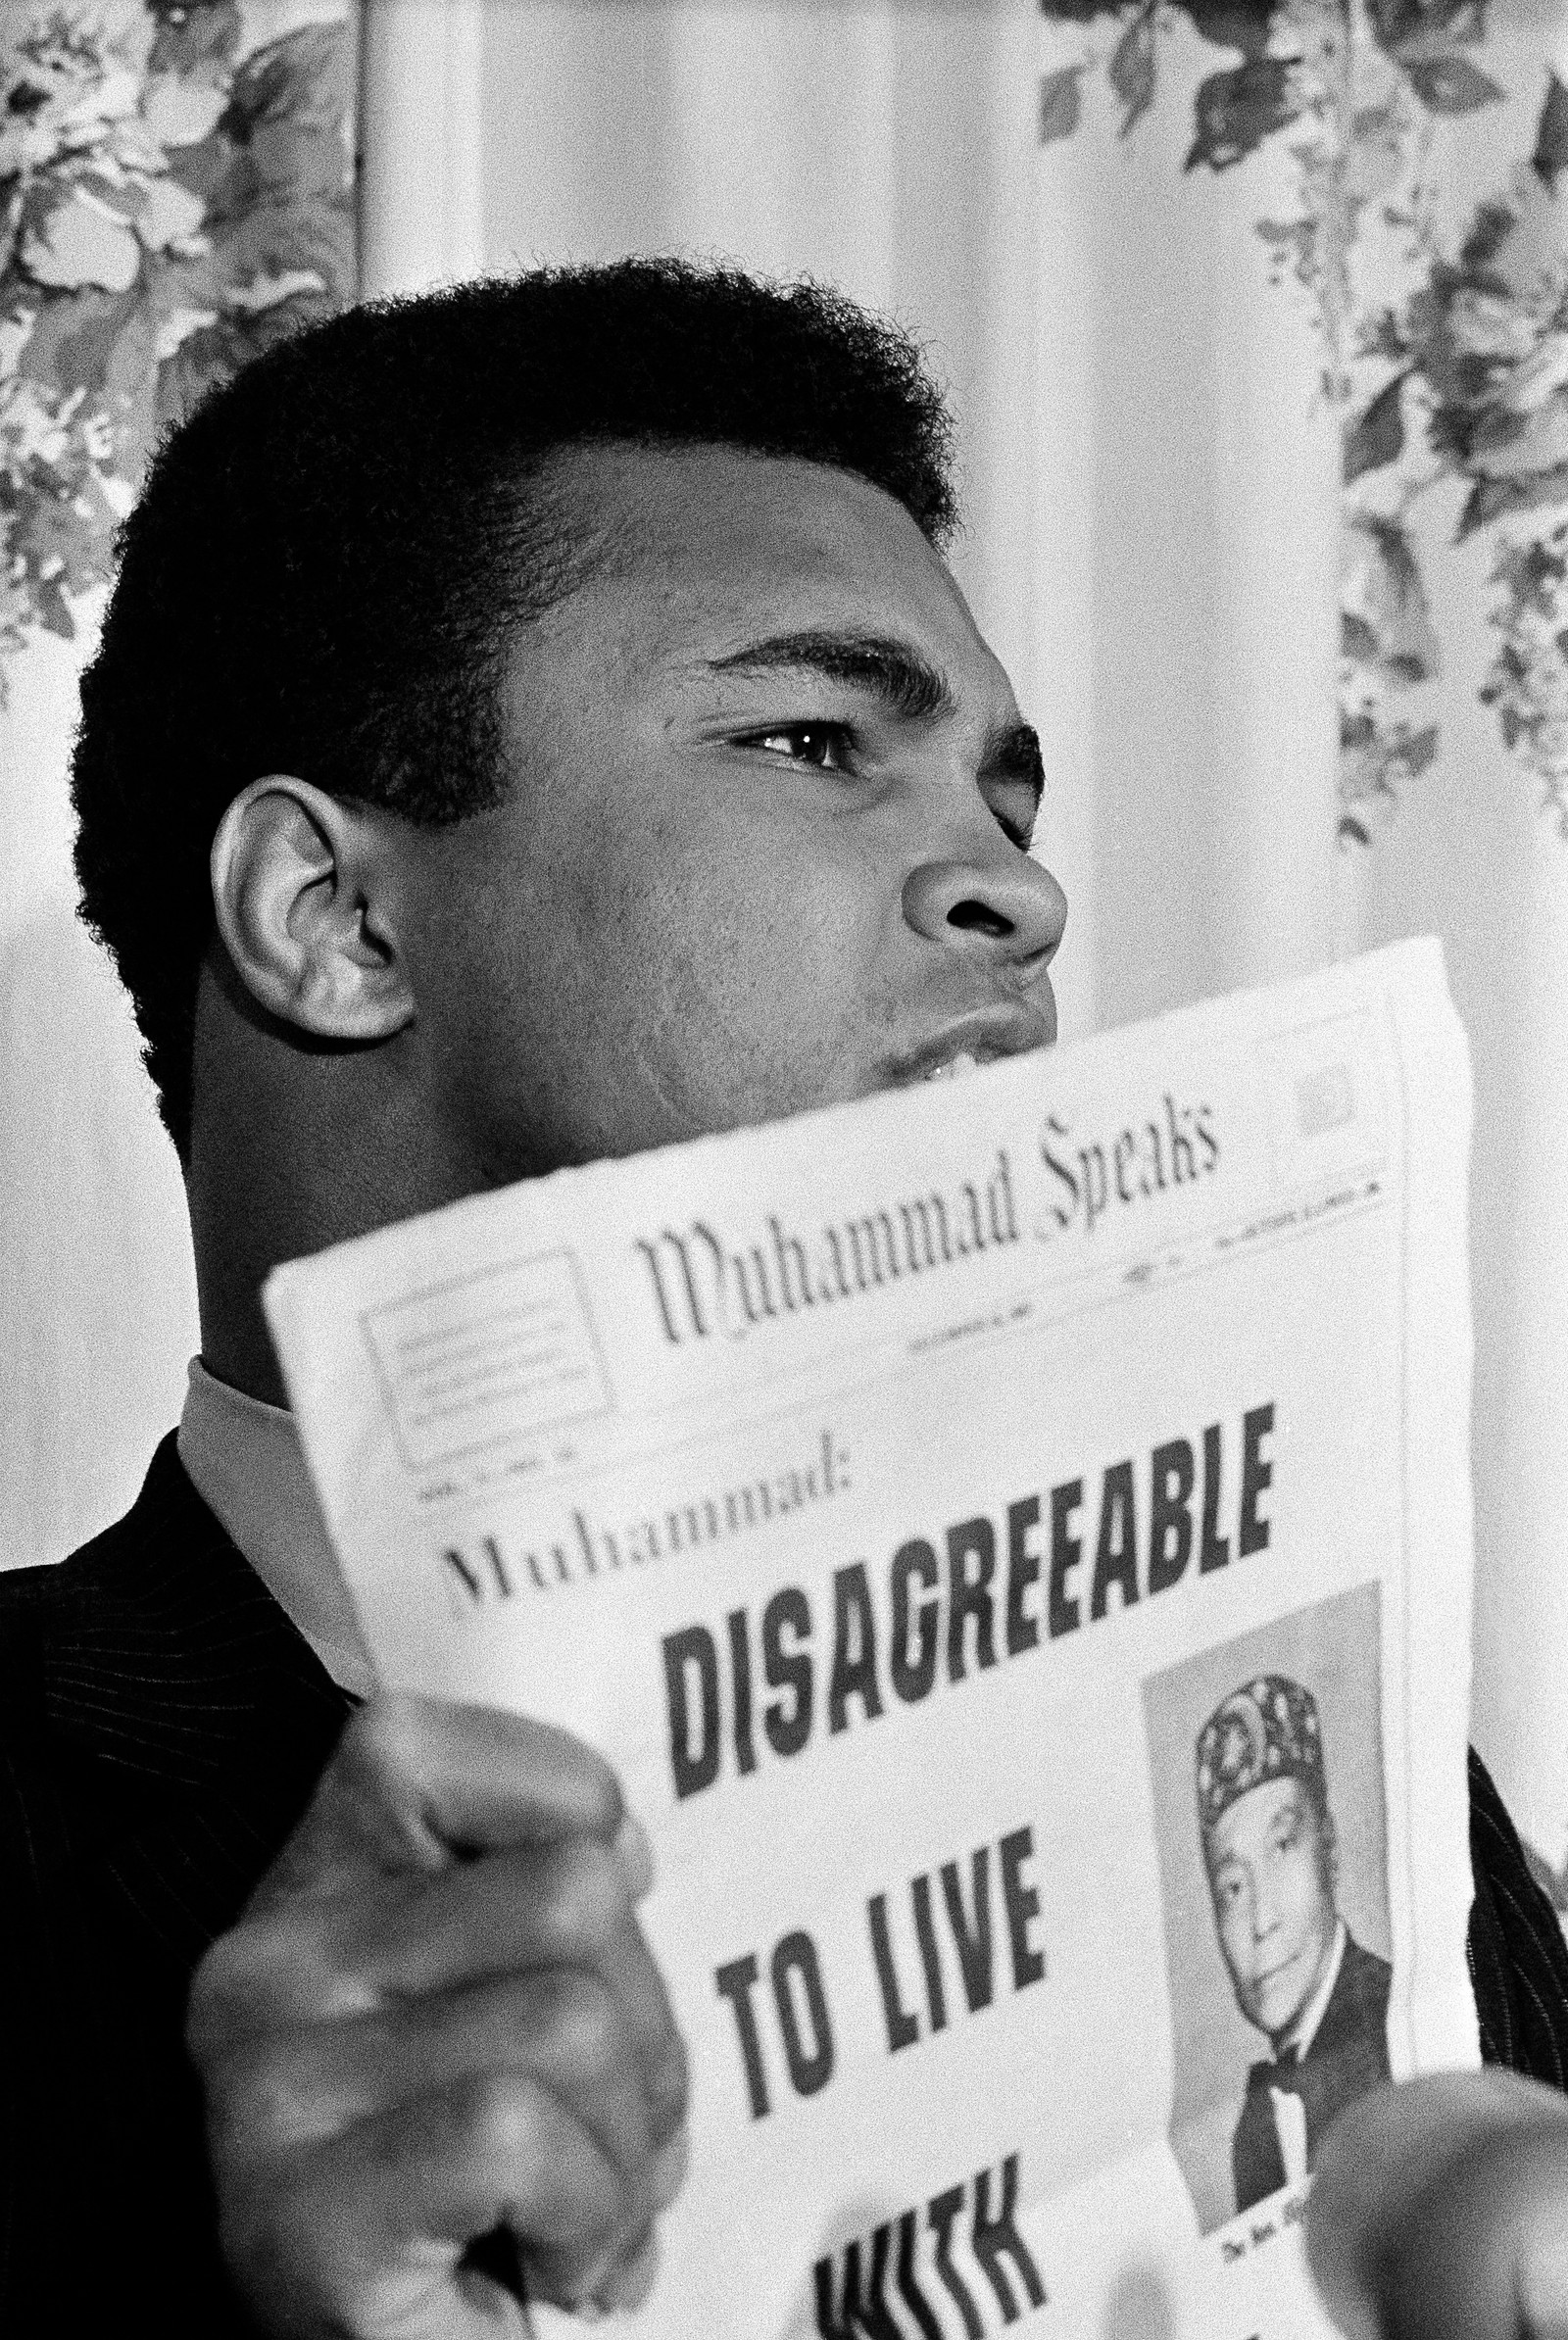 Muhammad Ali holder opp en utgave av Muhammad Speaks i Albany, New York, 19. desember 1967.